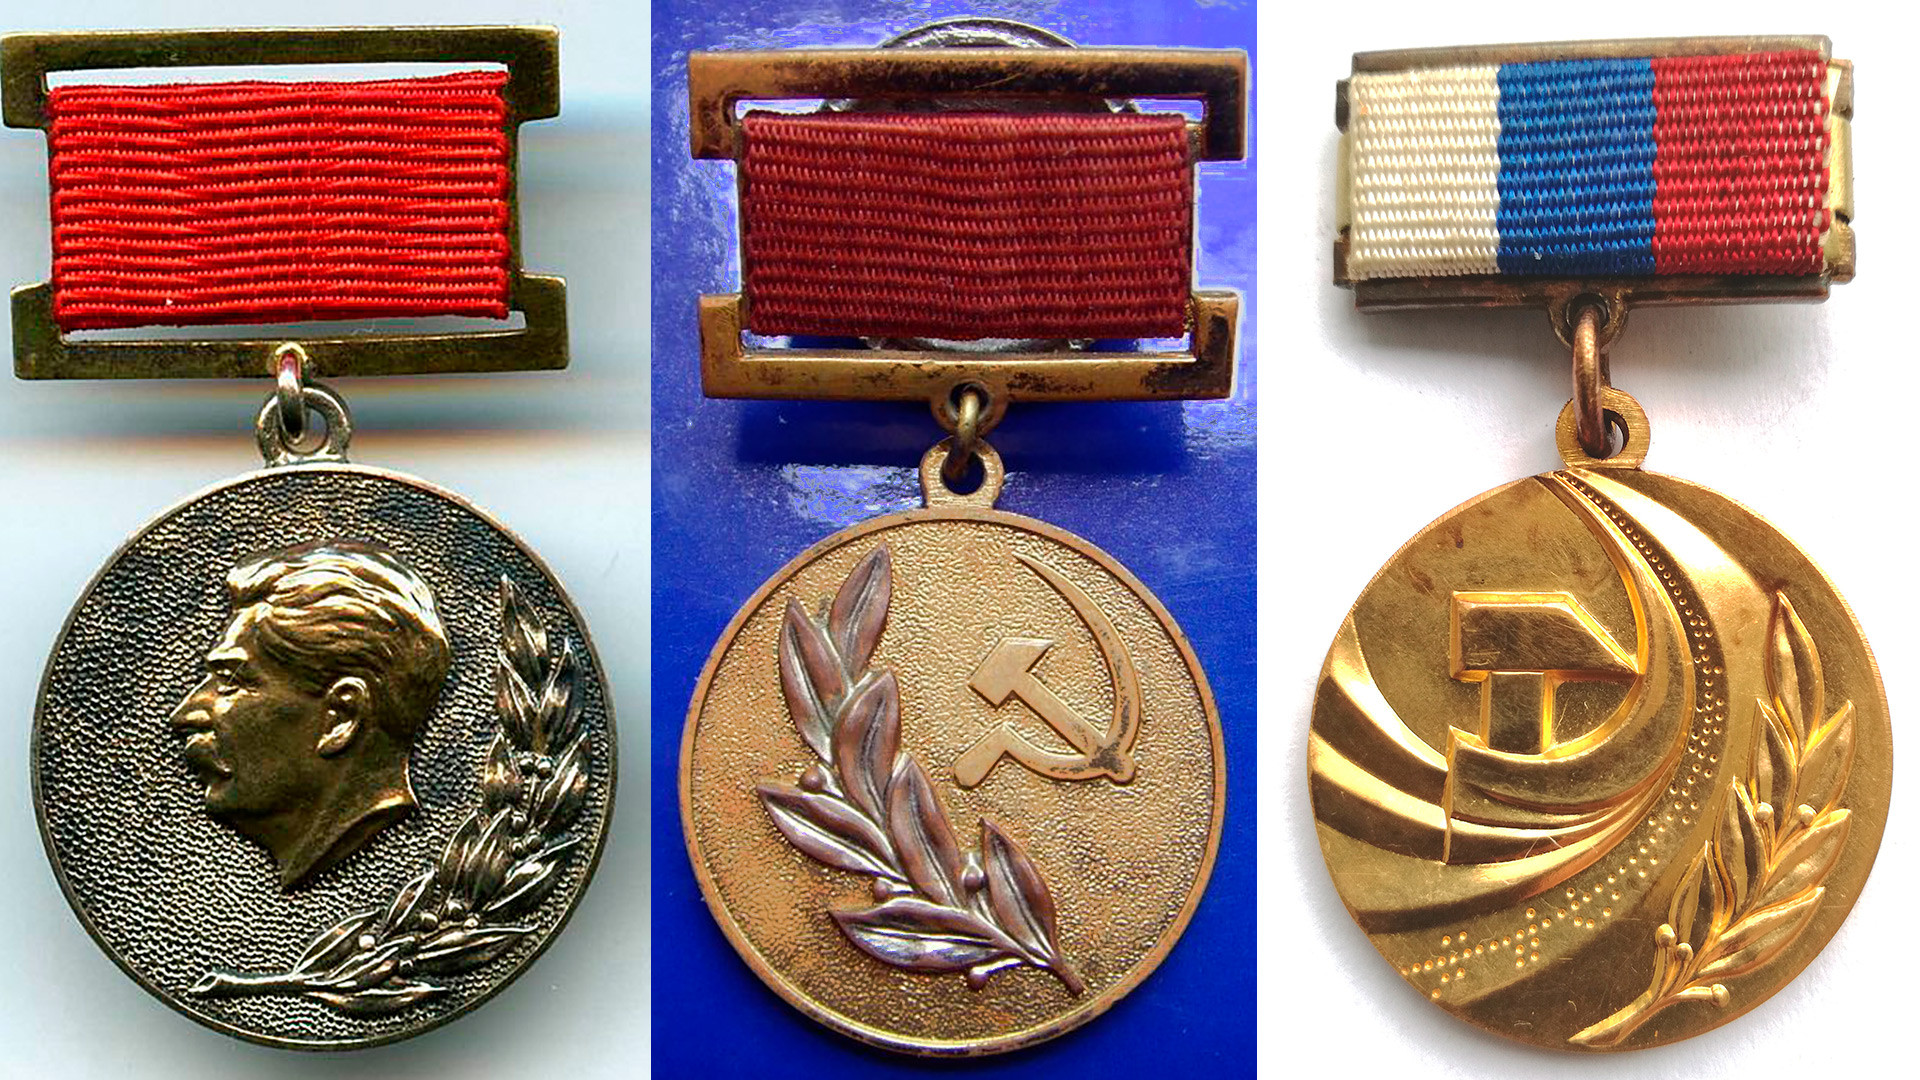 State Prizes' medals from the Stalin's USSR to contemporary Russia